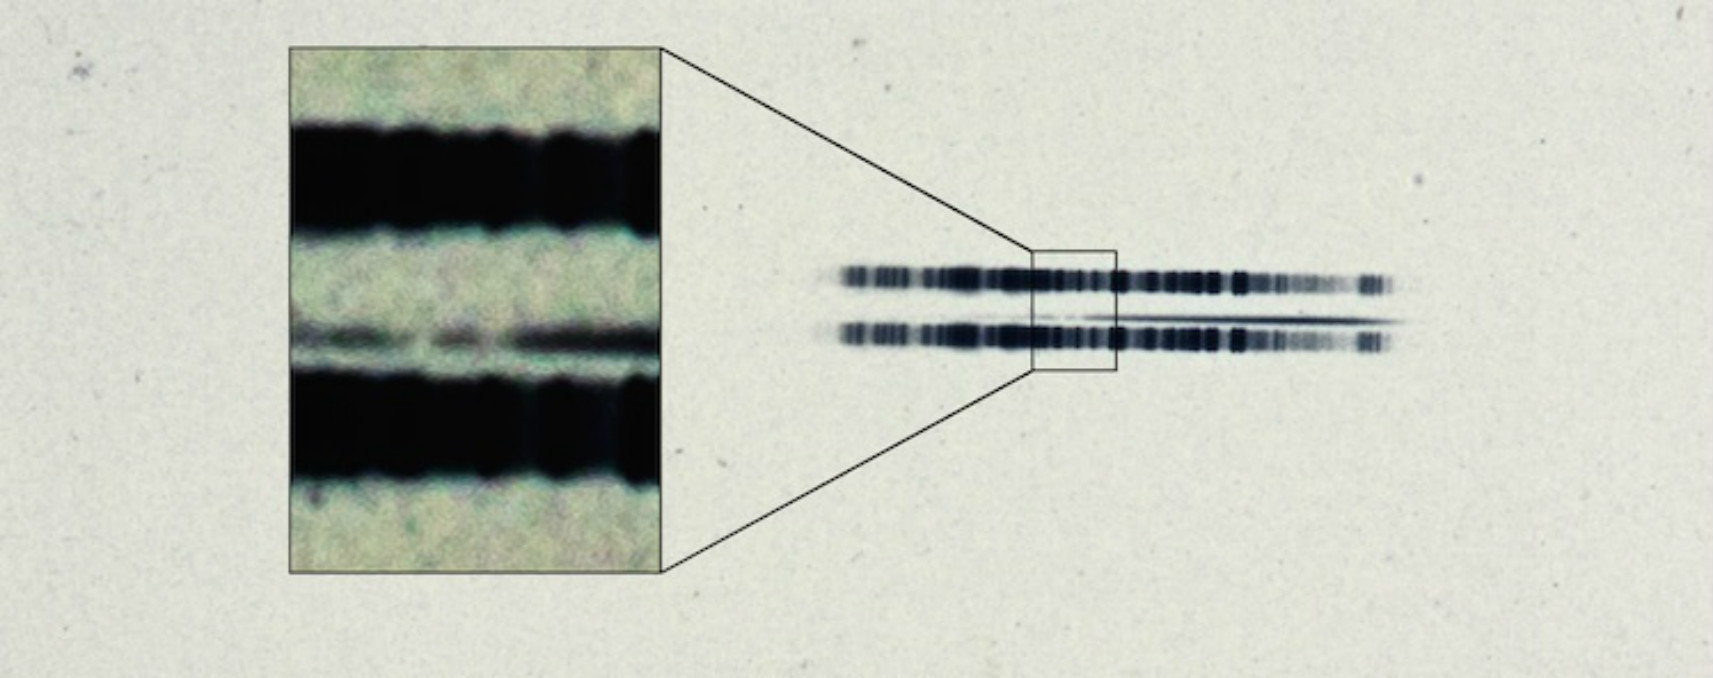 "The 1917 photographic plate spectrum of van Maanen's star from the Carnegie Observatories' archive. The pull-out box shows the strong lines of the element calcium, which are surprisingly easy to see in the century old spectrum.  The spectrum is the thin, (mostly) dark line in the center of the image. The broad dark lanes above and below are from lamps used to calibrate wavelength, and are contrast-enhanced in the box to highlight the two ""missing"" absorption bands in the star."